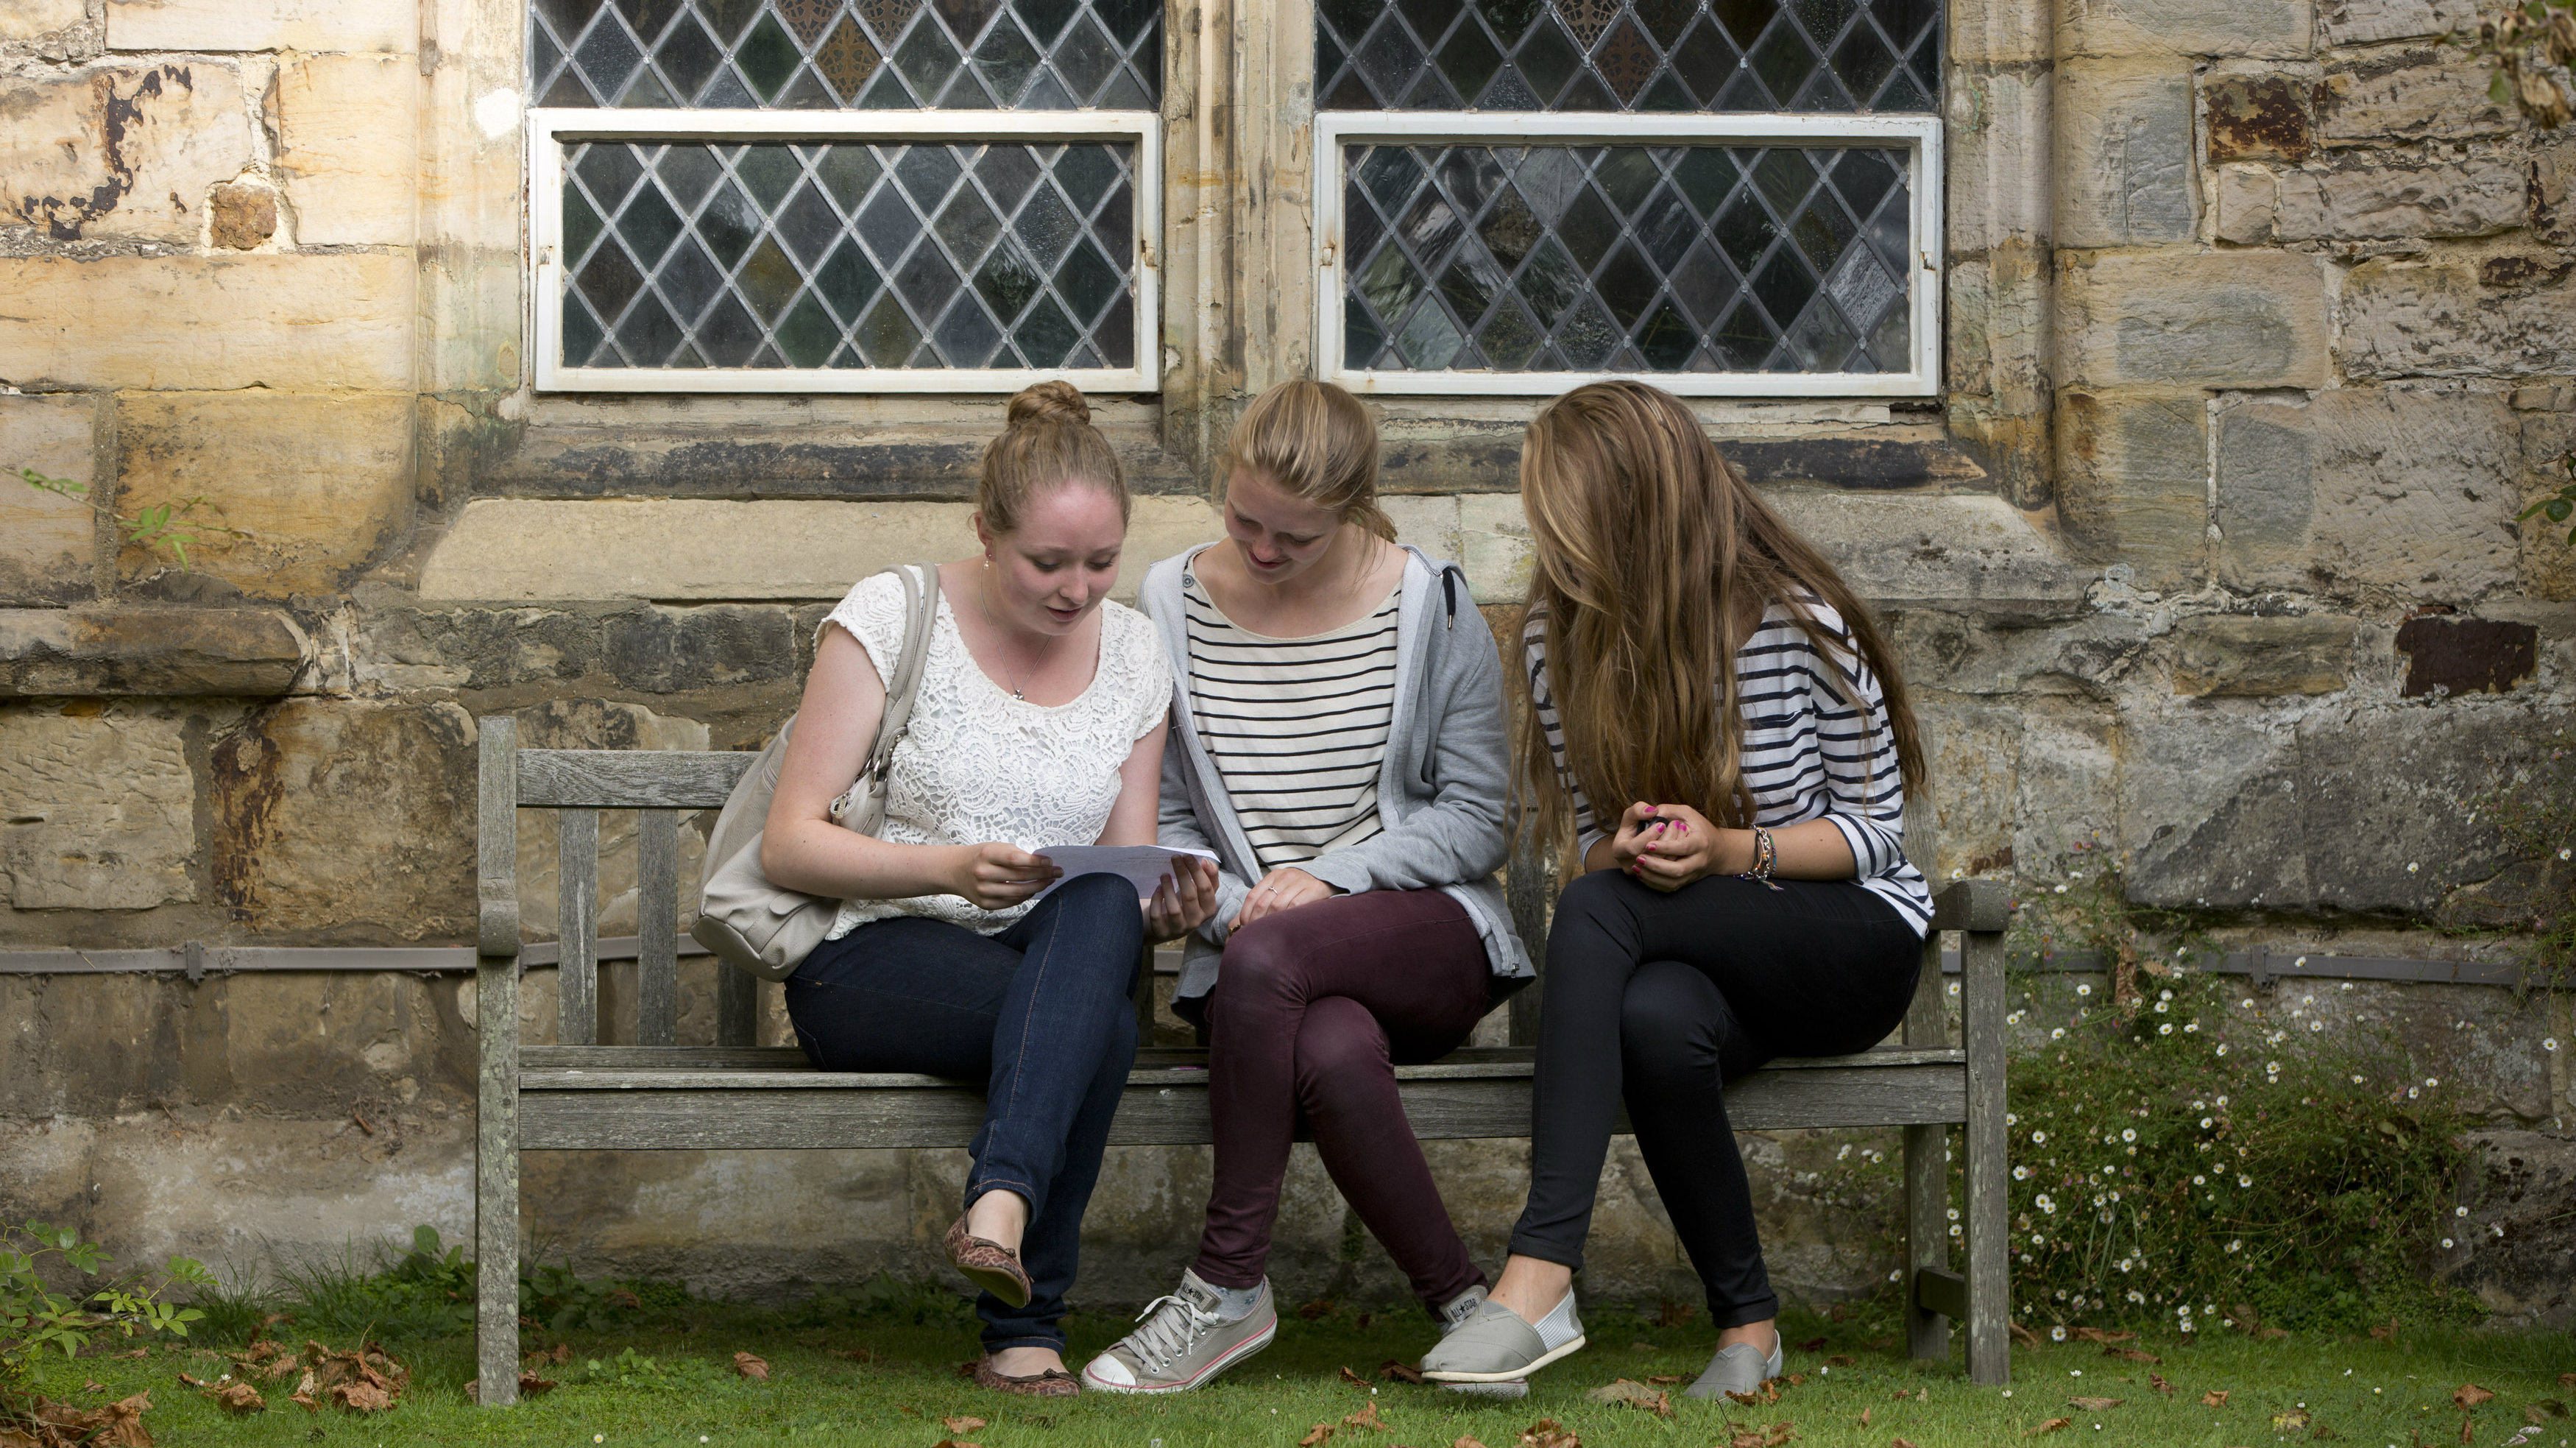 Pupils react after receiving their A-level exam results at St Leonards-Mayfield School in Mayfield, southern...